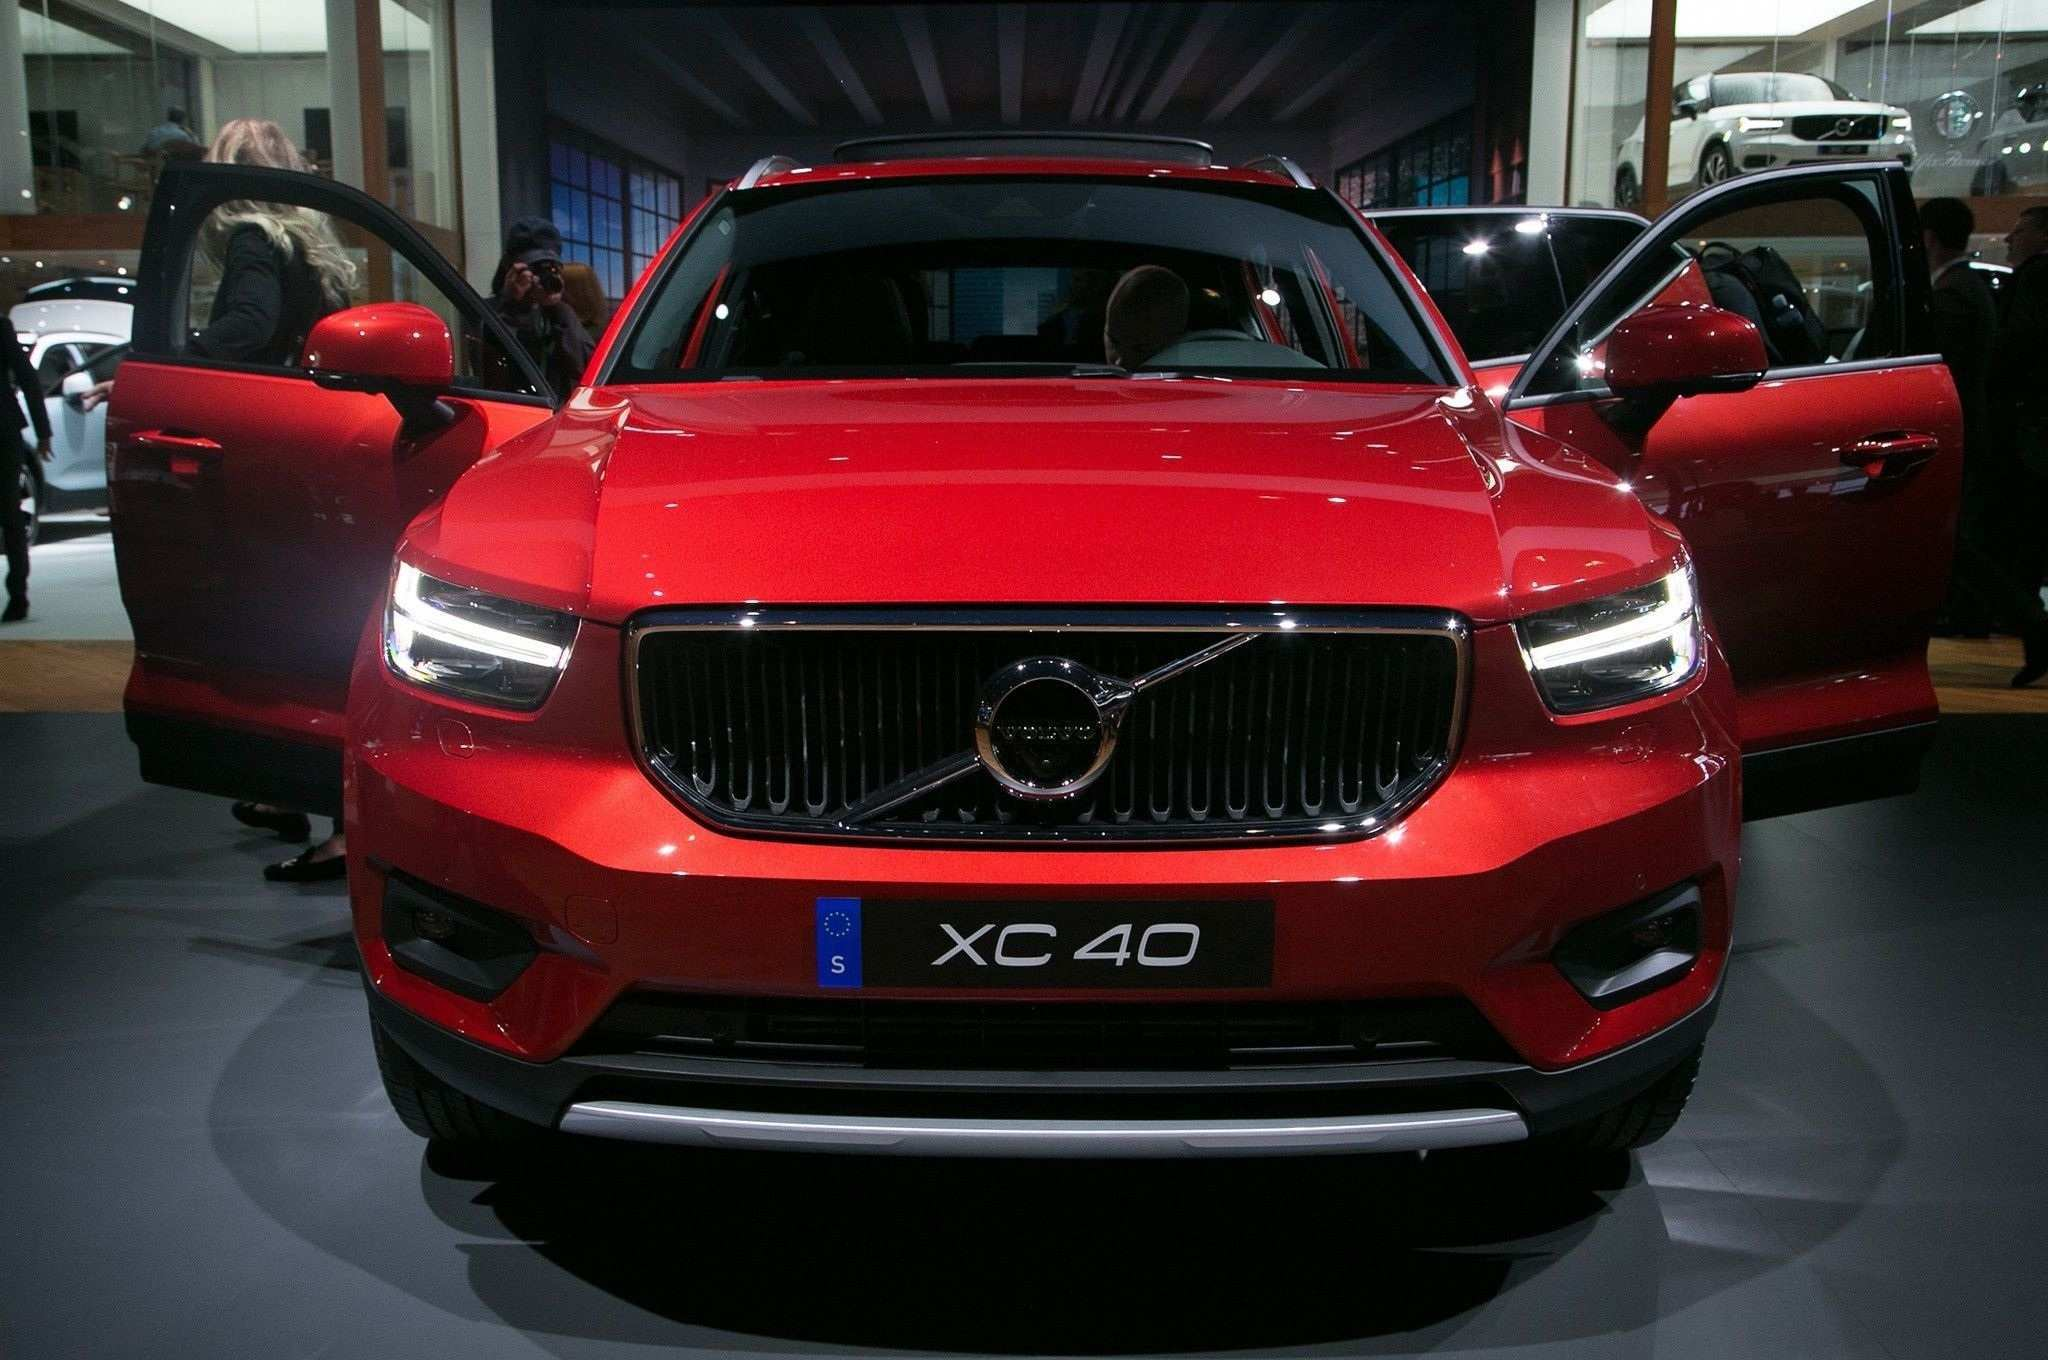 76 Gallery of Volvo To Go Electric By 2020 New Review by Volvo To Go Electric By 2020